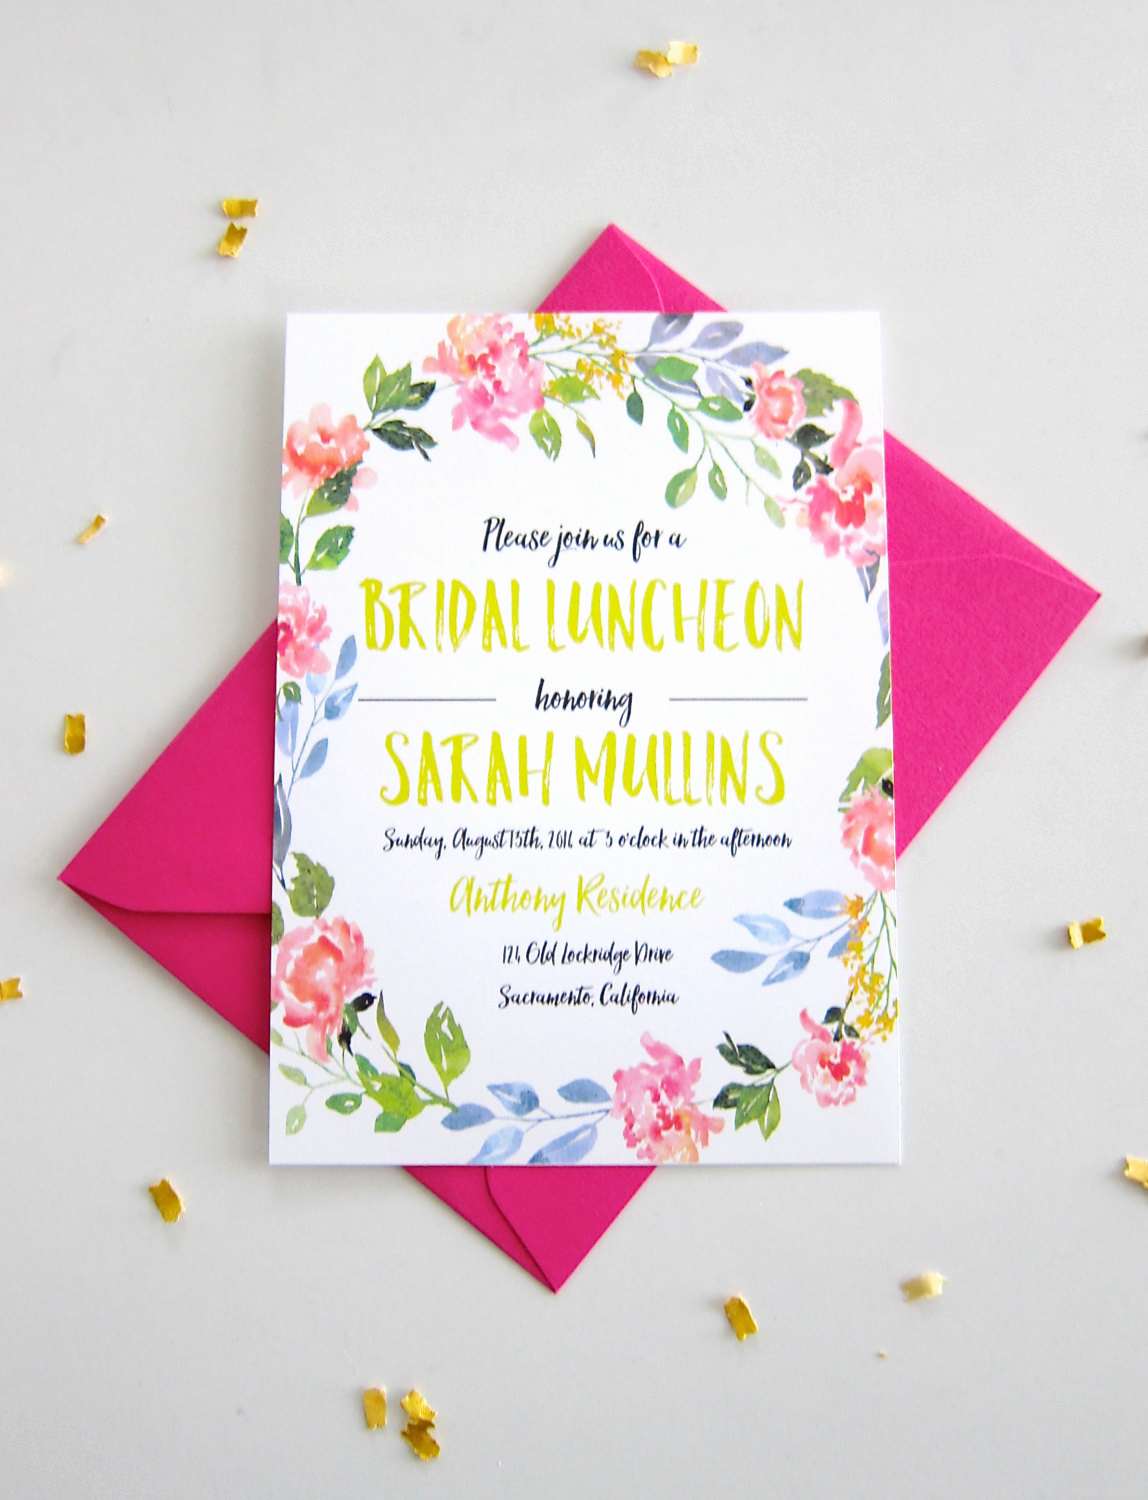 Bridal Luncheon Invitation Wording Lovely Printable or Printed Bridal Luncheon by Shoppapergarden On